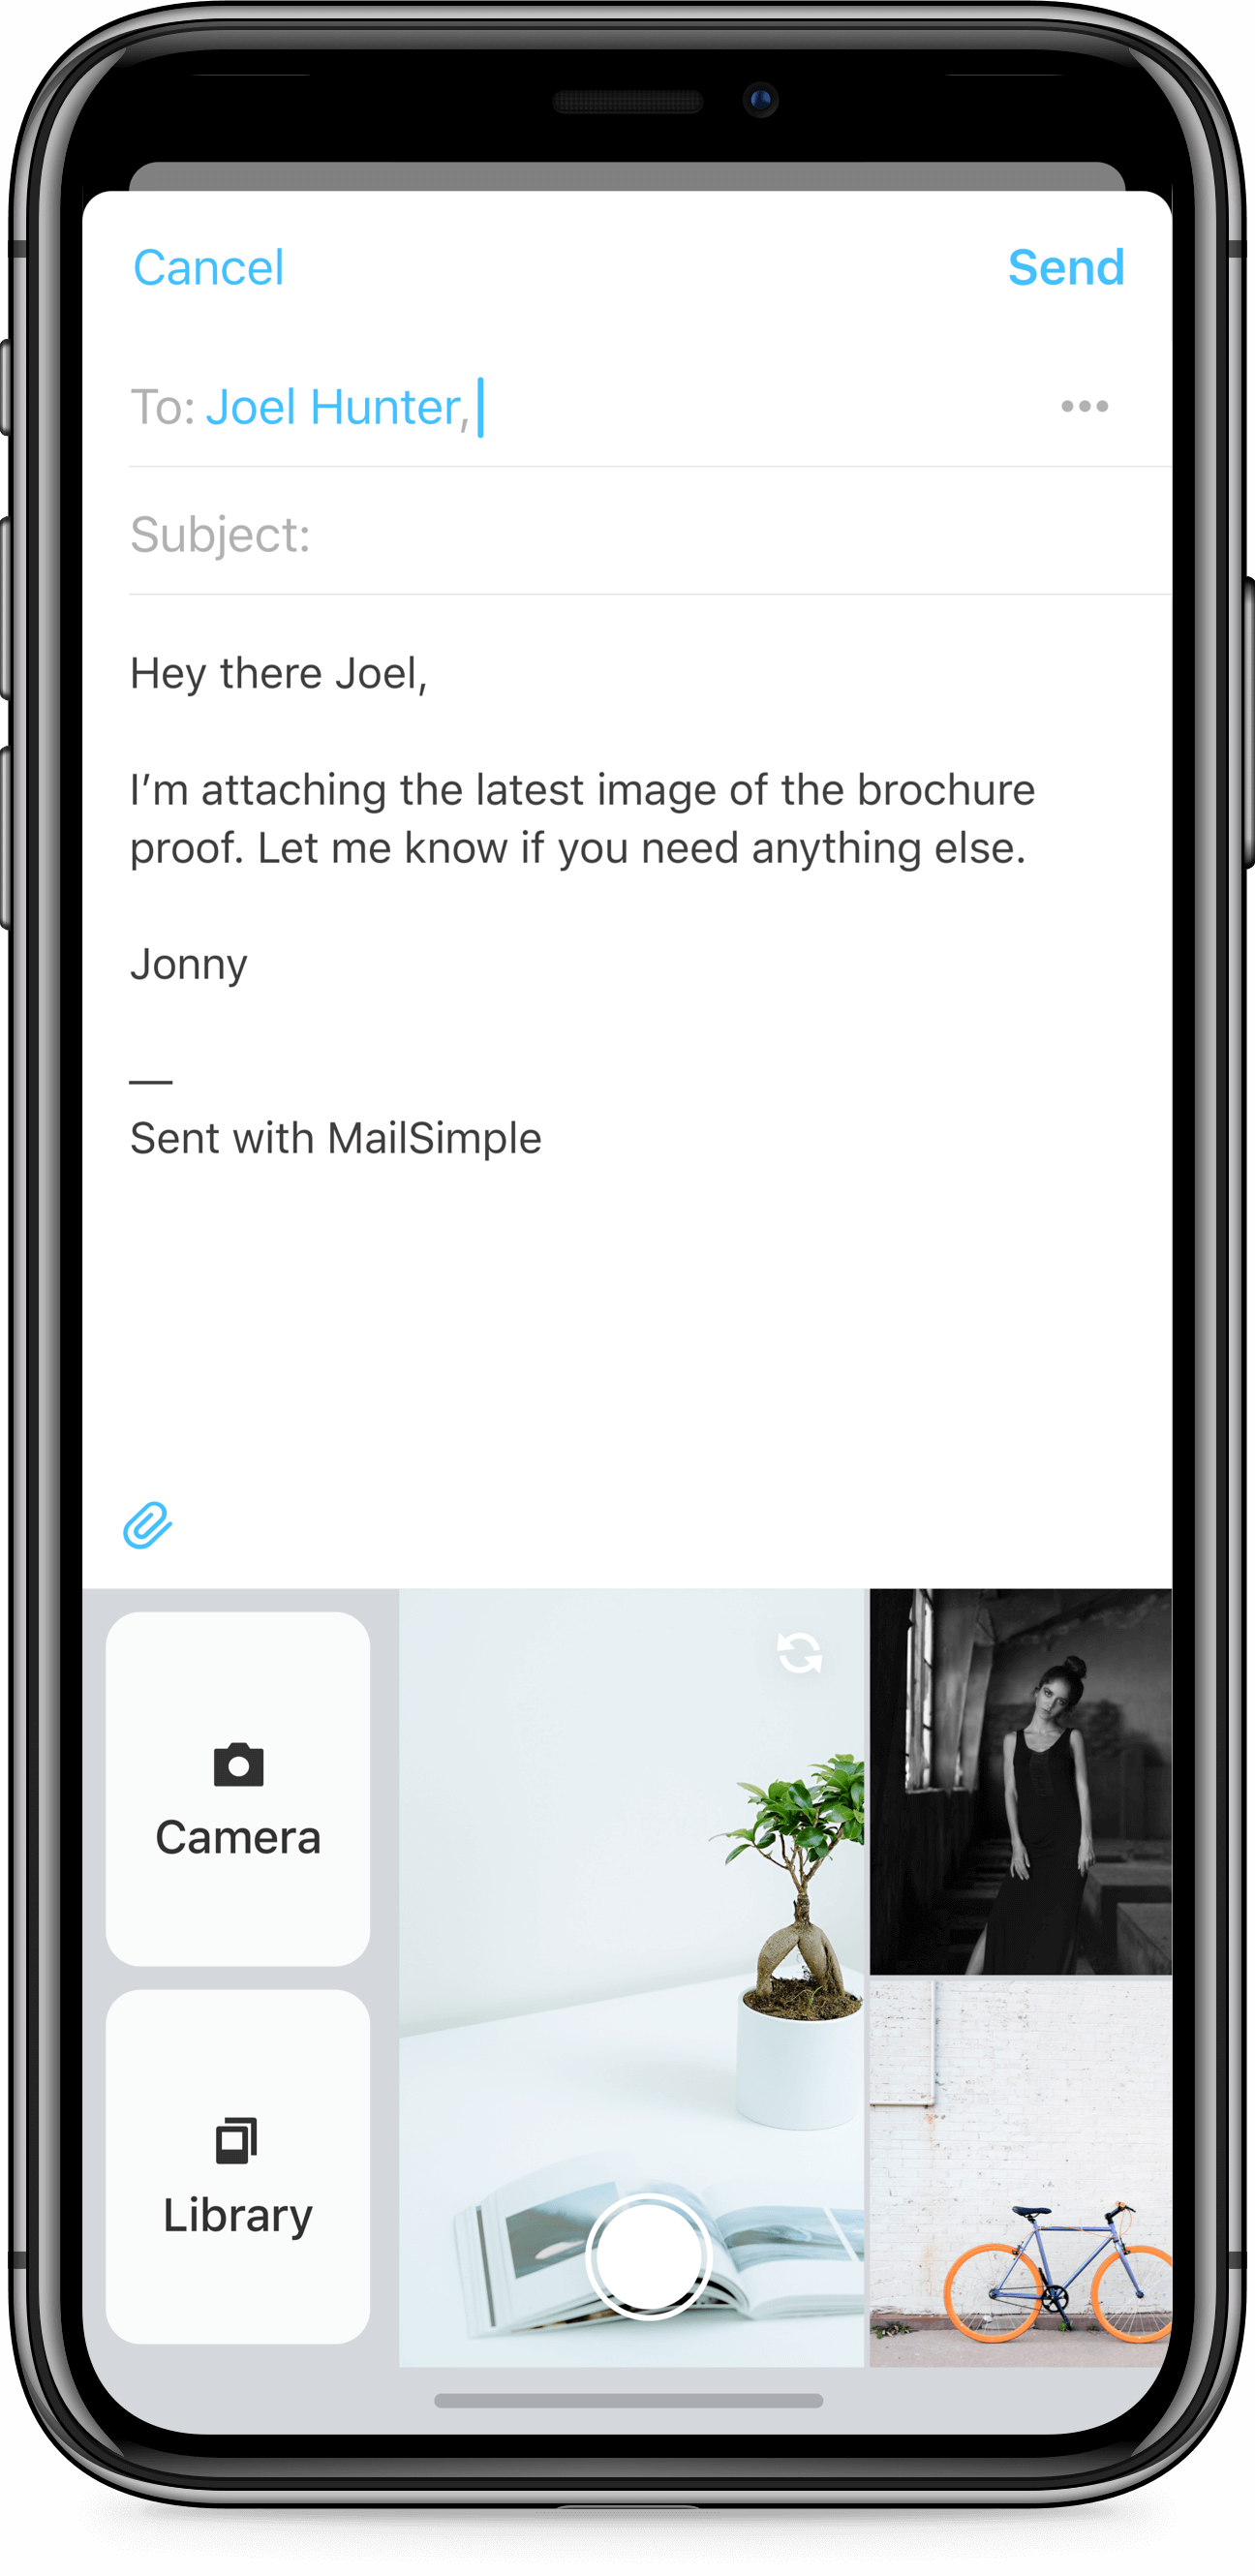 iPhone X app design of Mail Simple email client for iOS. Email composition with custom photo attachment keyboard